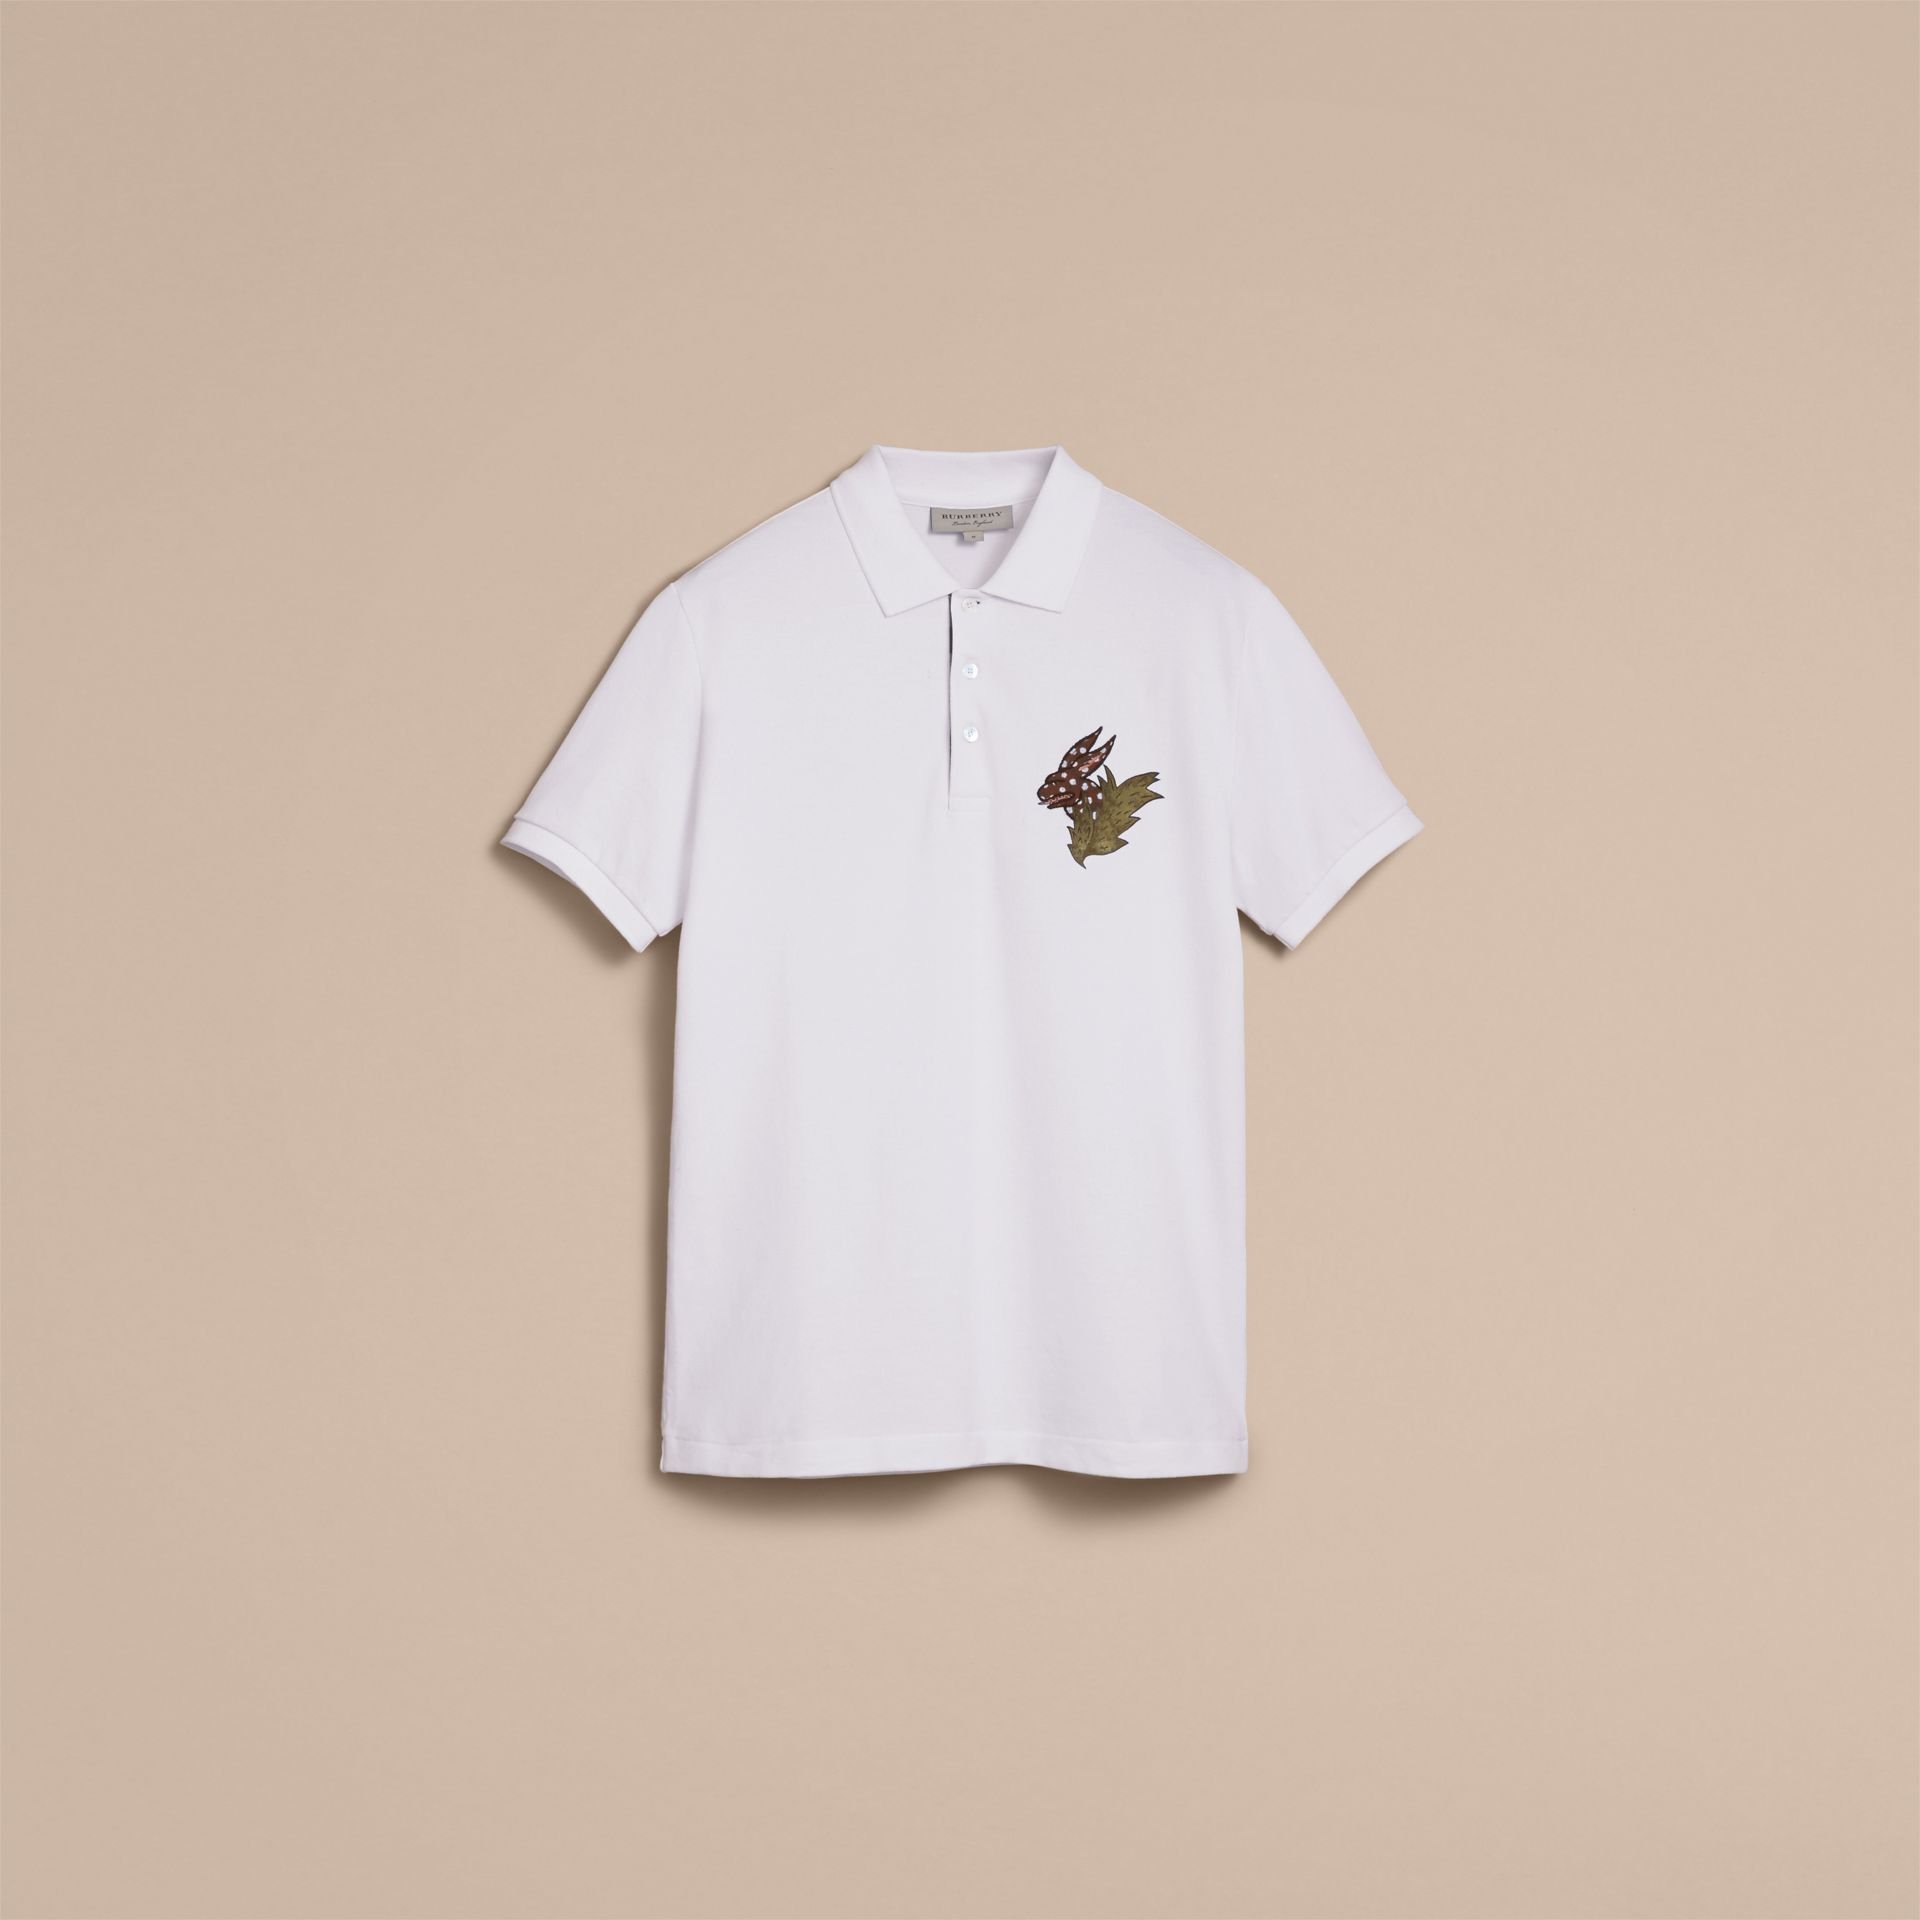 Beasts Motif Cotton Piqué Polo Shirt in White - gallery image 4